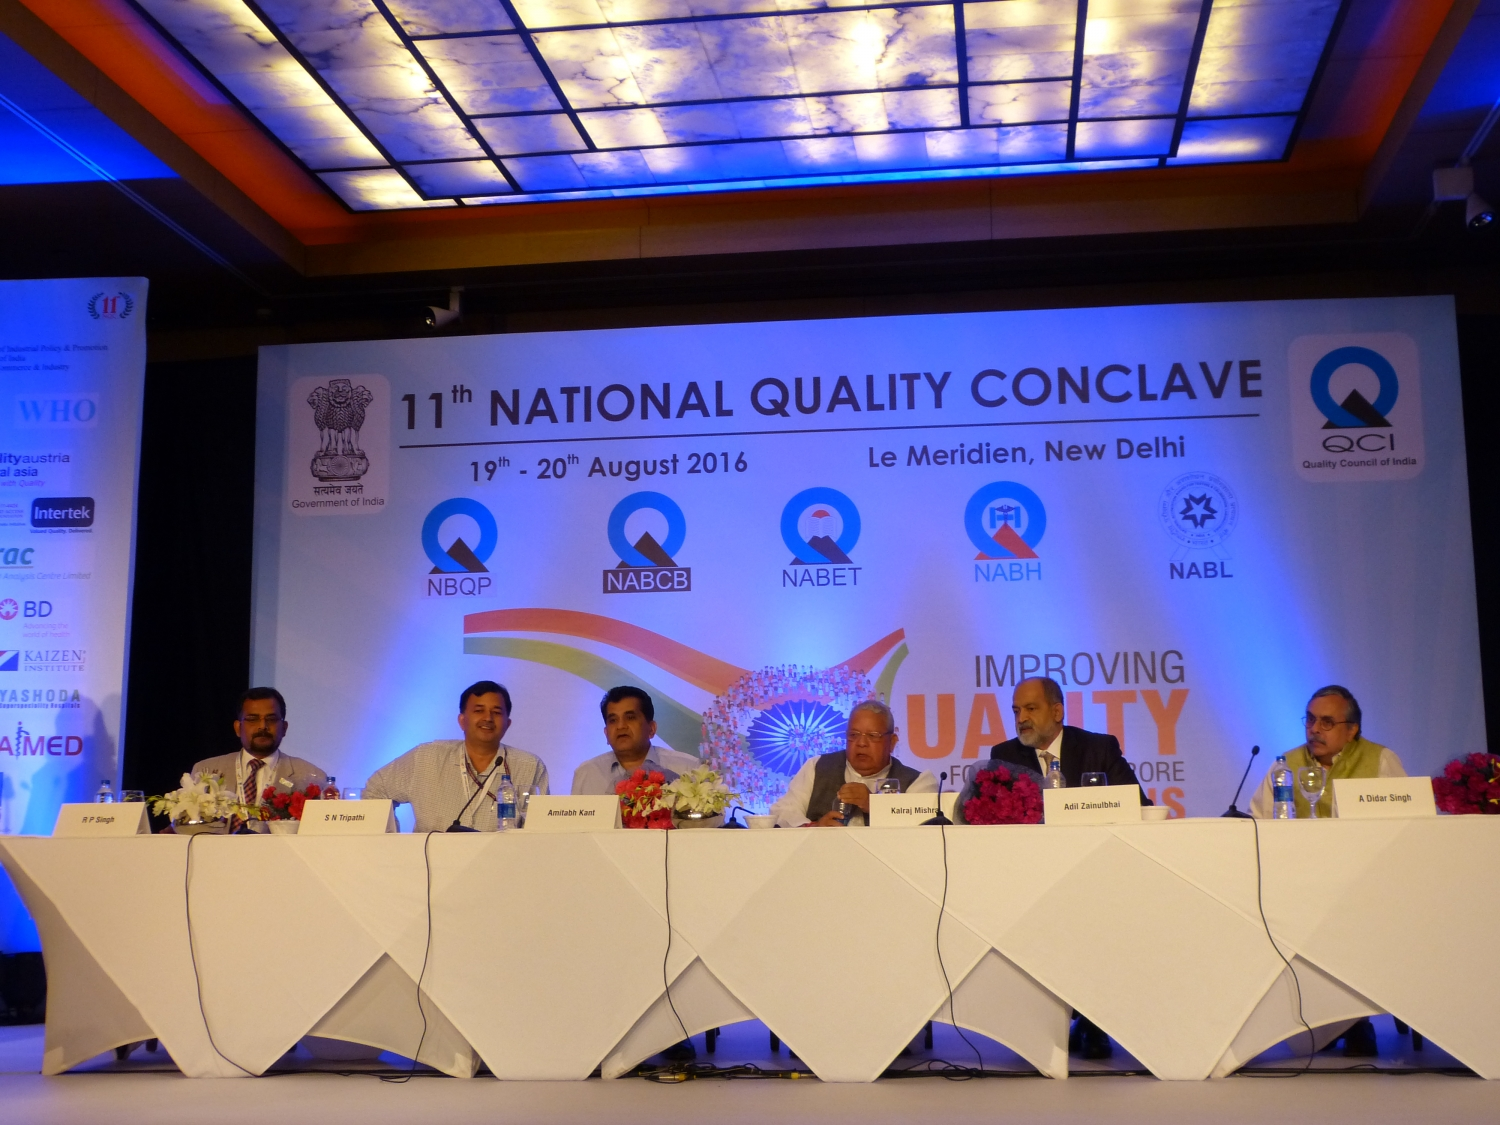 Da esq. para a dir.: Dr. Ravi P. Singh - Secretário Geral do Quality Council of Índia ; S. N. Tripathi - IAS, Addl. Sec & DC MSME ; Amitabh Kant - IAS, CEO NITI AAYOG ; Dr. Kalraj Mishra - Hon'ble Minister of MSME ; Adil Zanulbhai - Chairman of the Quality Council of India ; Dr. A. Didar Singh - IAS, Secretary General of FICCI